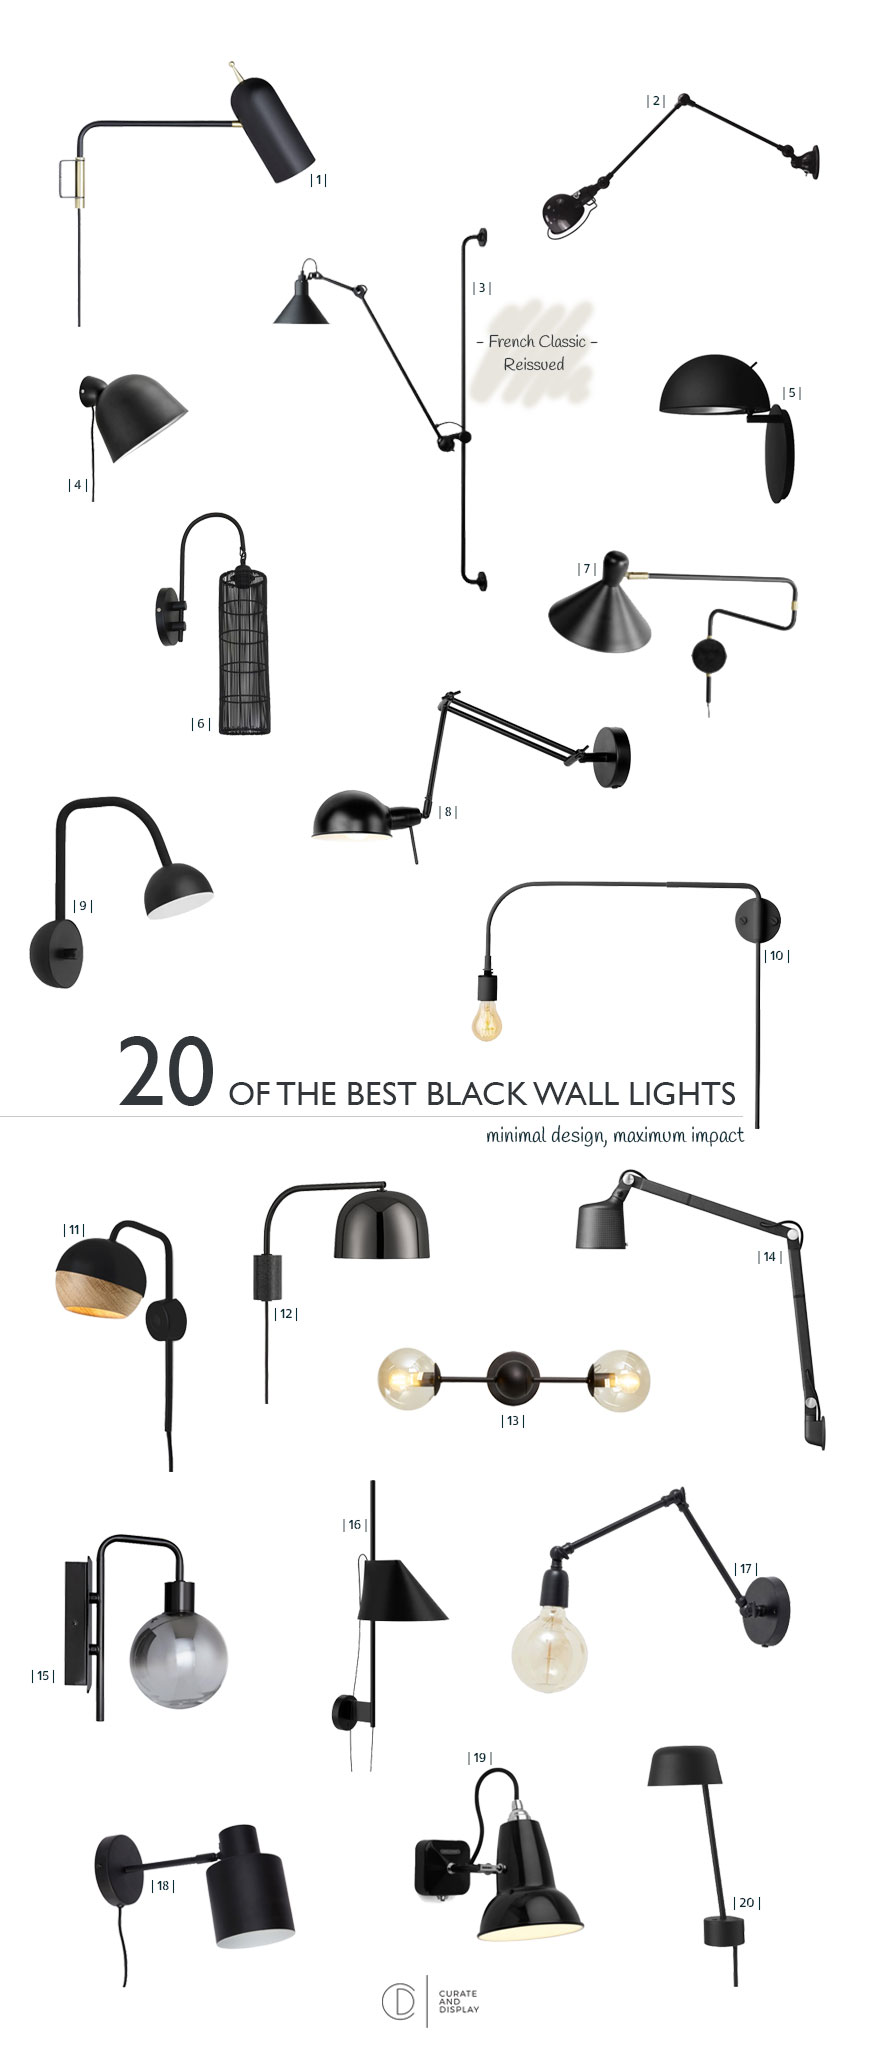 20 of the best black wall lights ranging from budget to blow out!